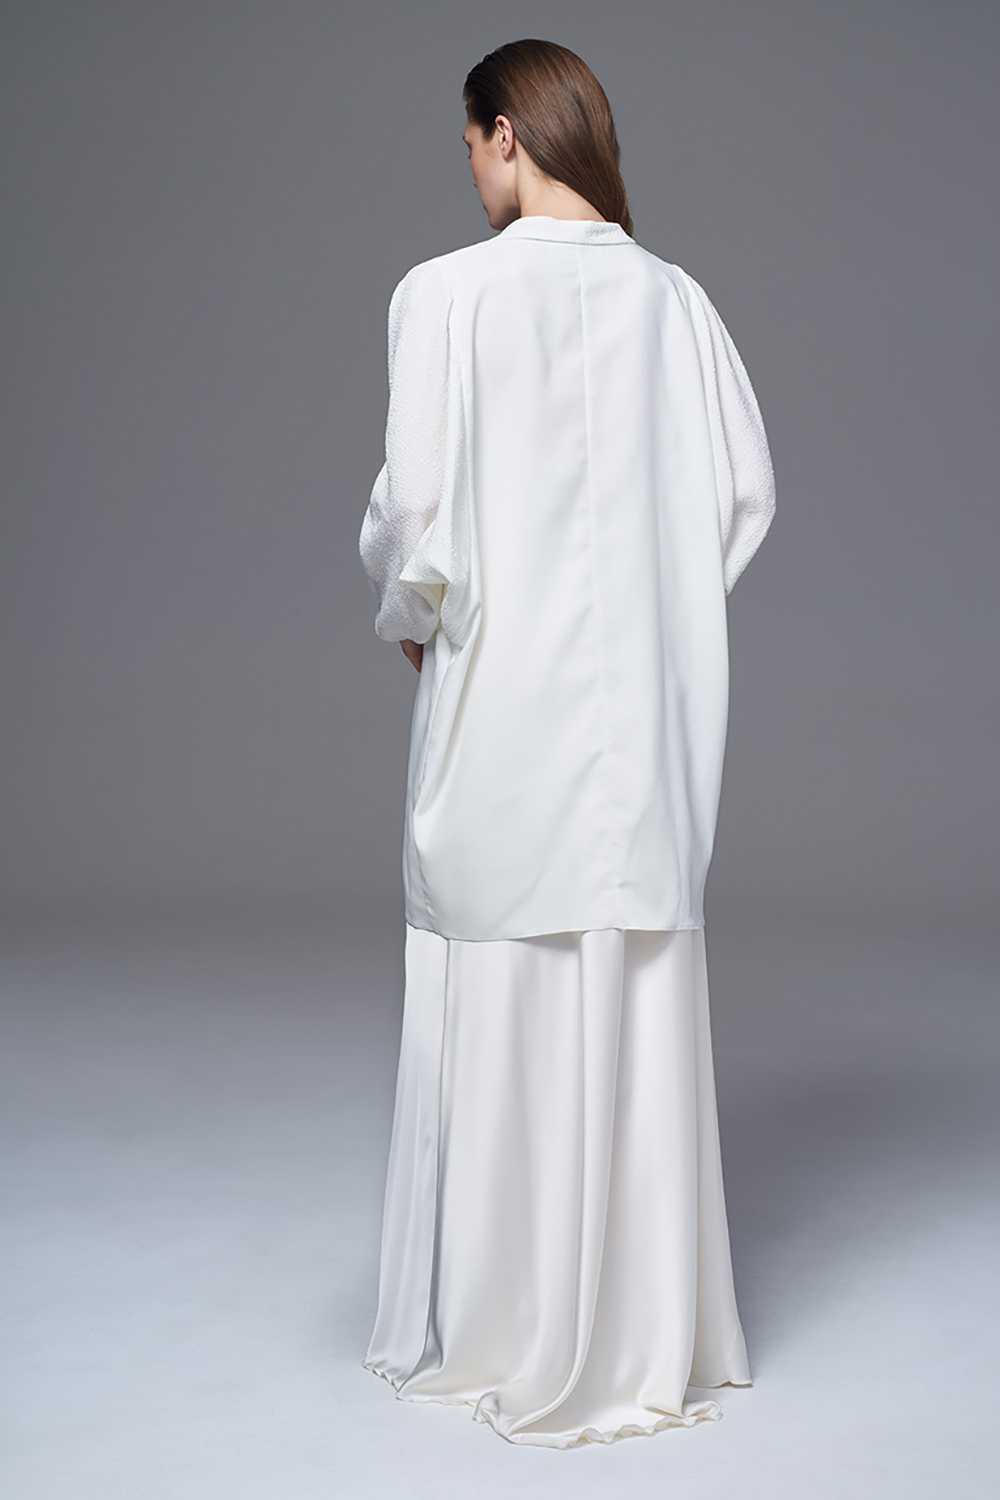 THE KIMONO IN FULL SATIN WITH BOXY SLEEVES. BRIDAL WEDDING DRESS BY HALFPENNY LONDON